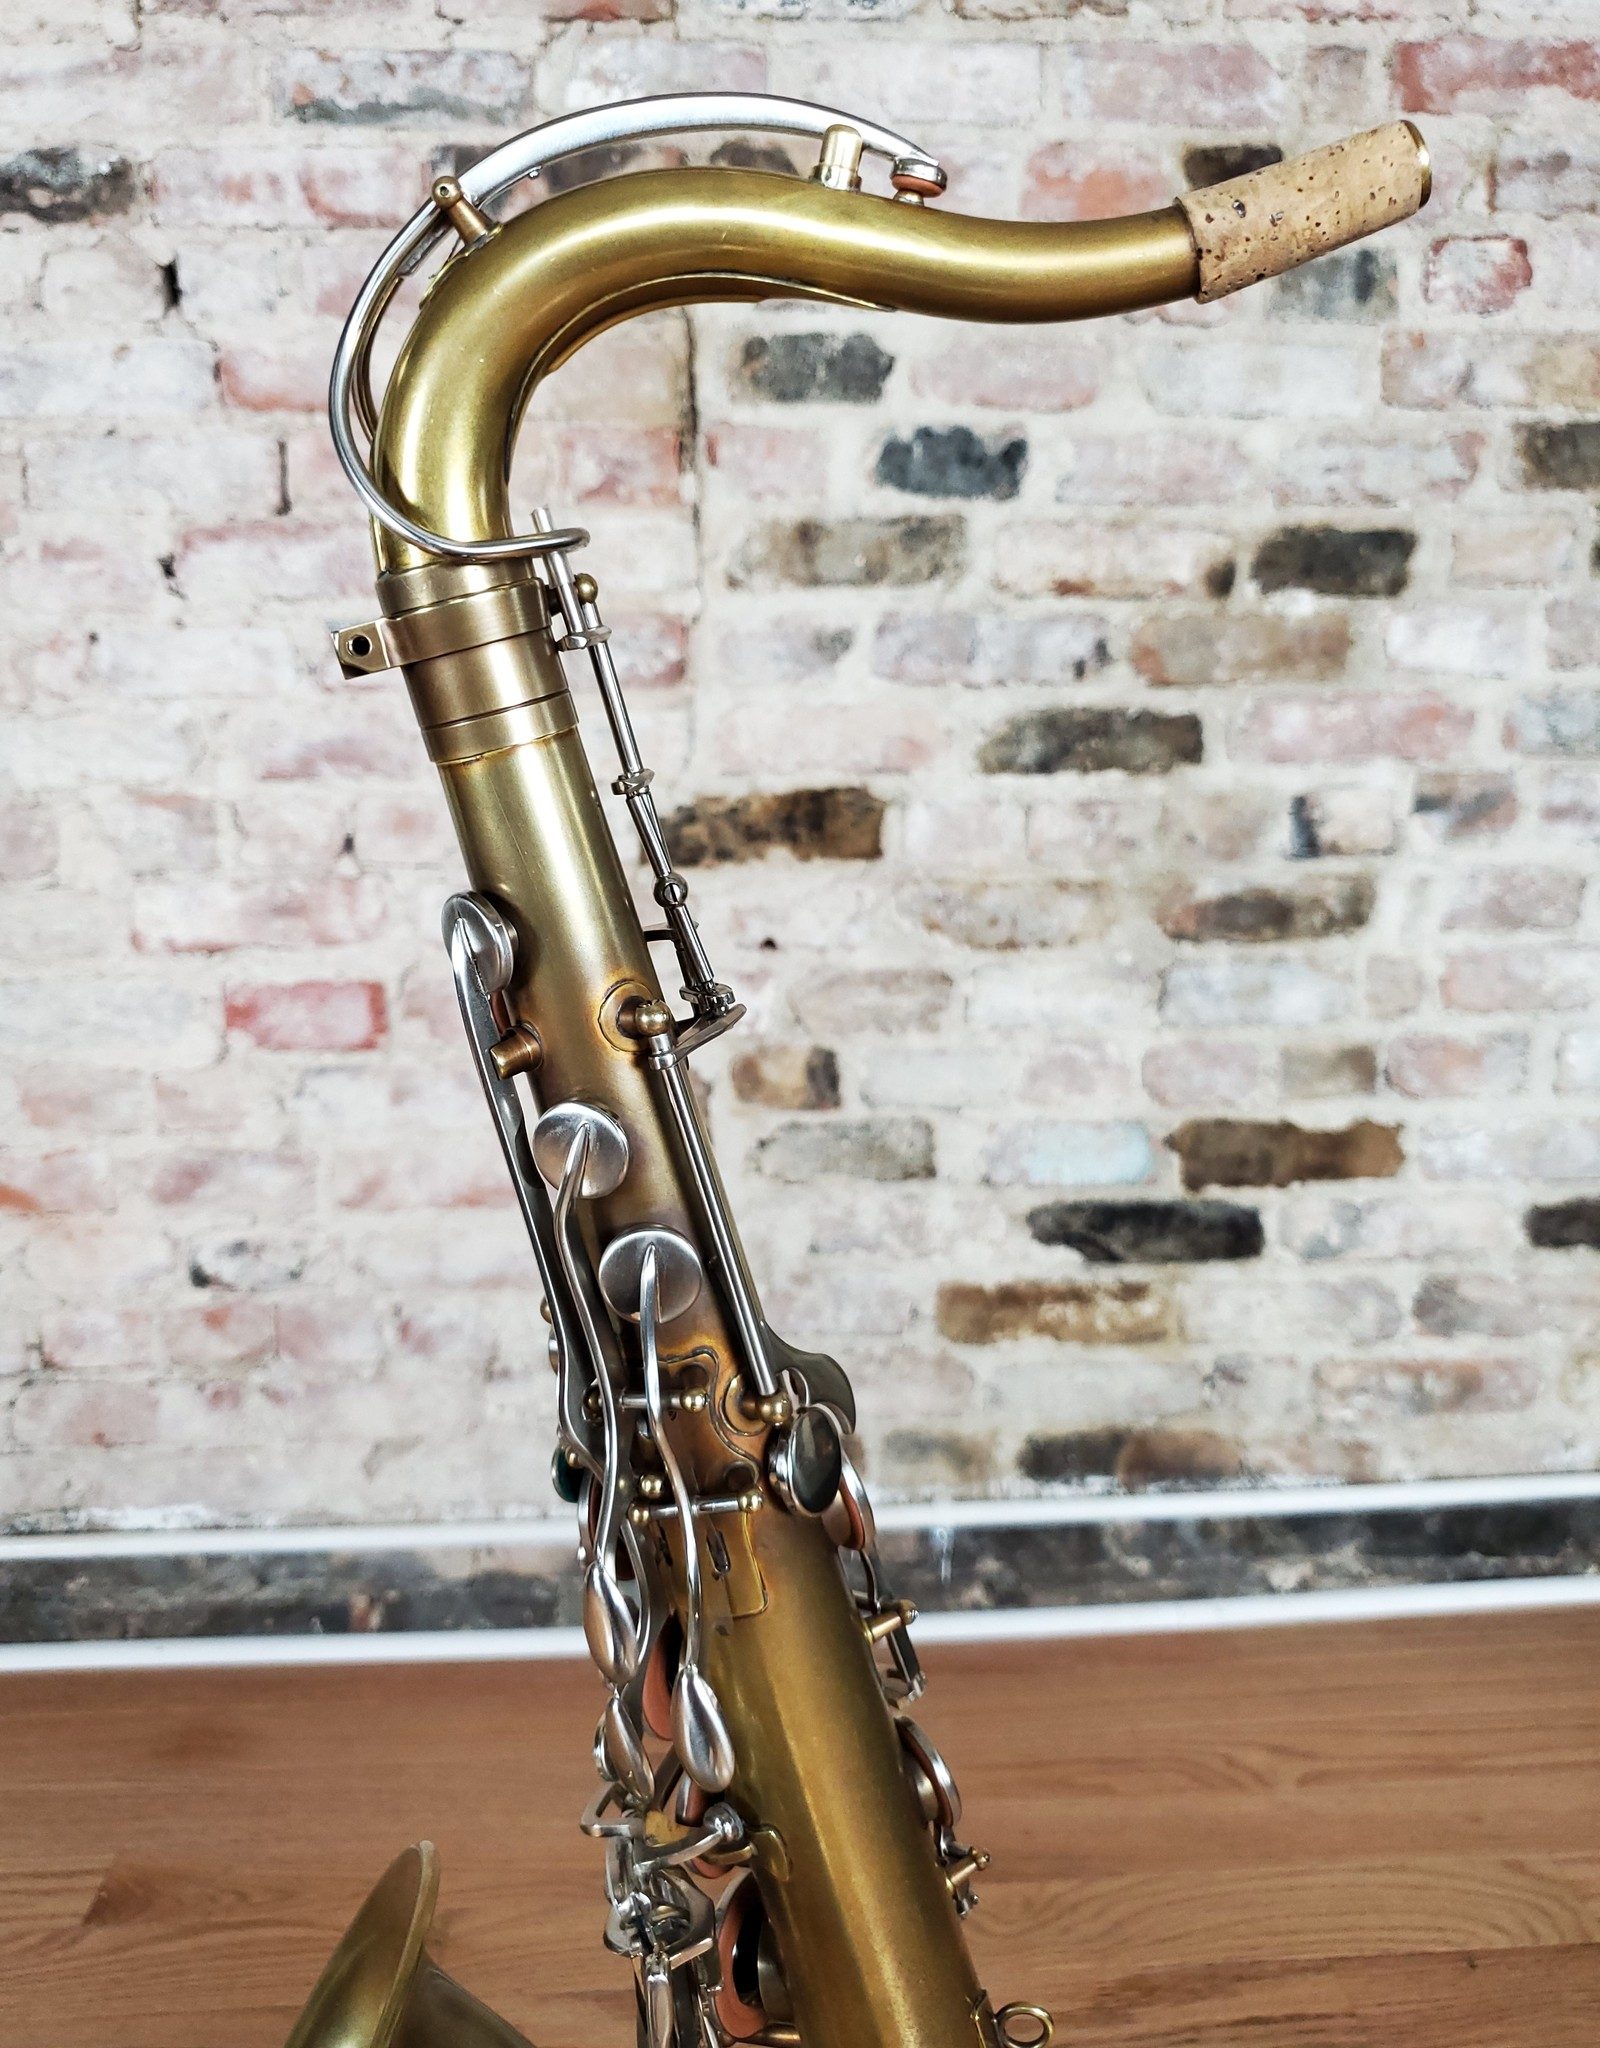 JL Woodwinds JL Woodwinds Custom Unlacquered Tenor with Brushed Nickel Keys